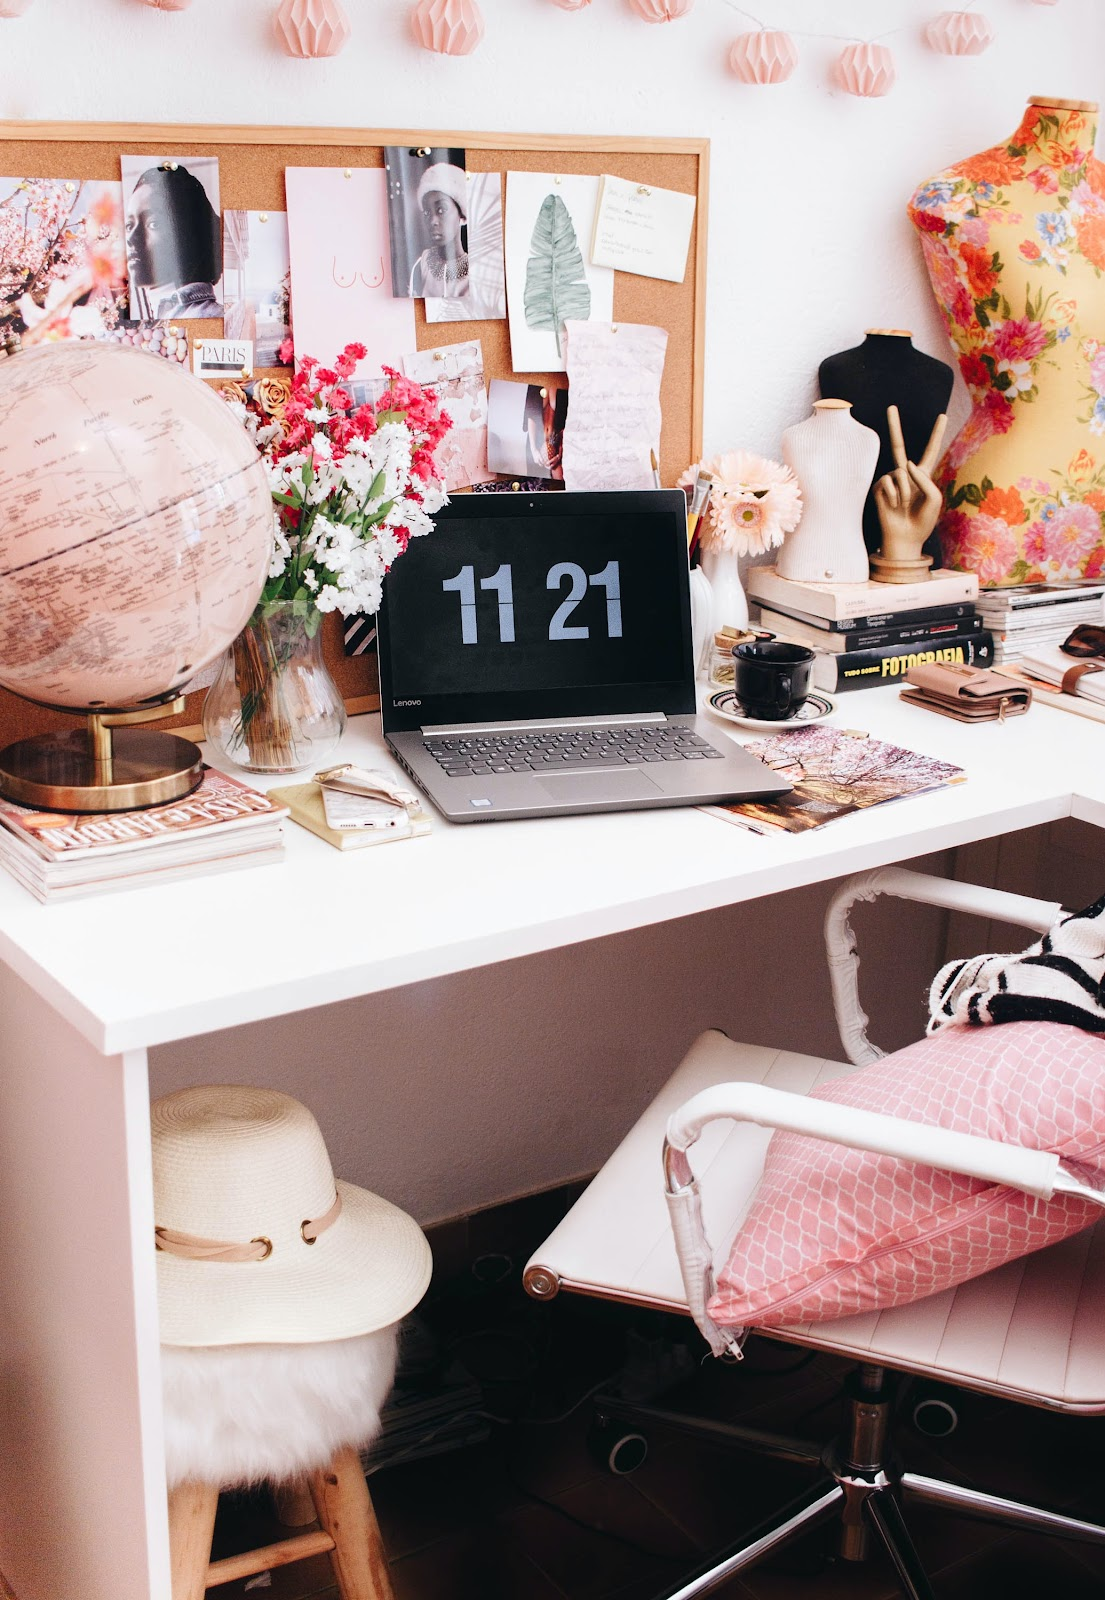 Home office interior in pink